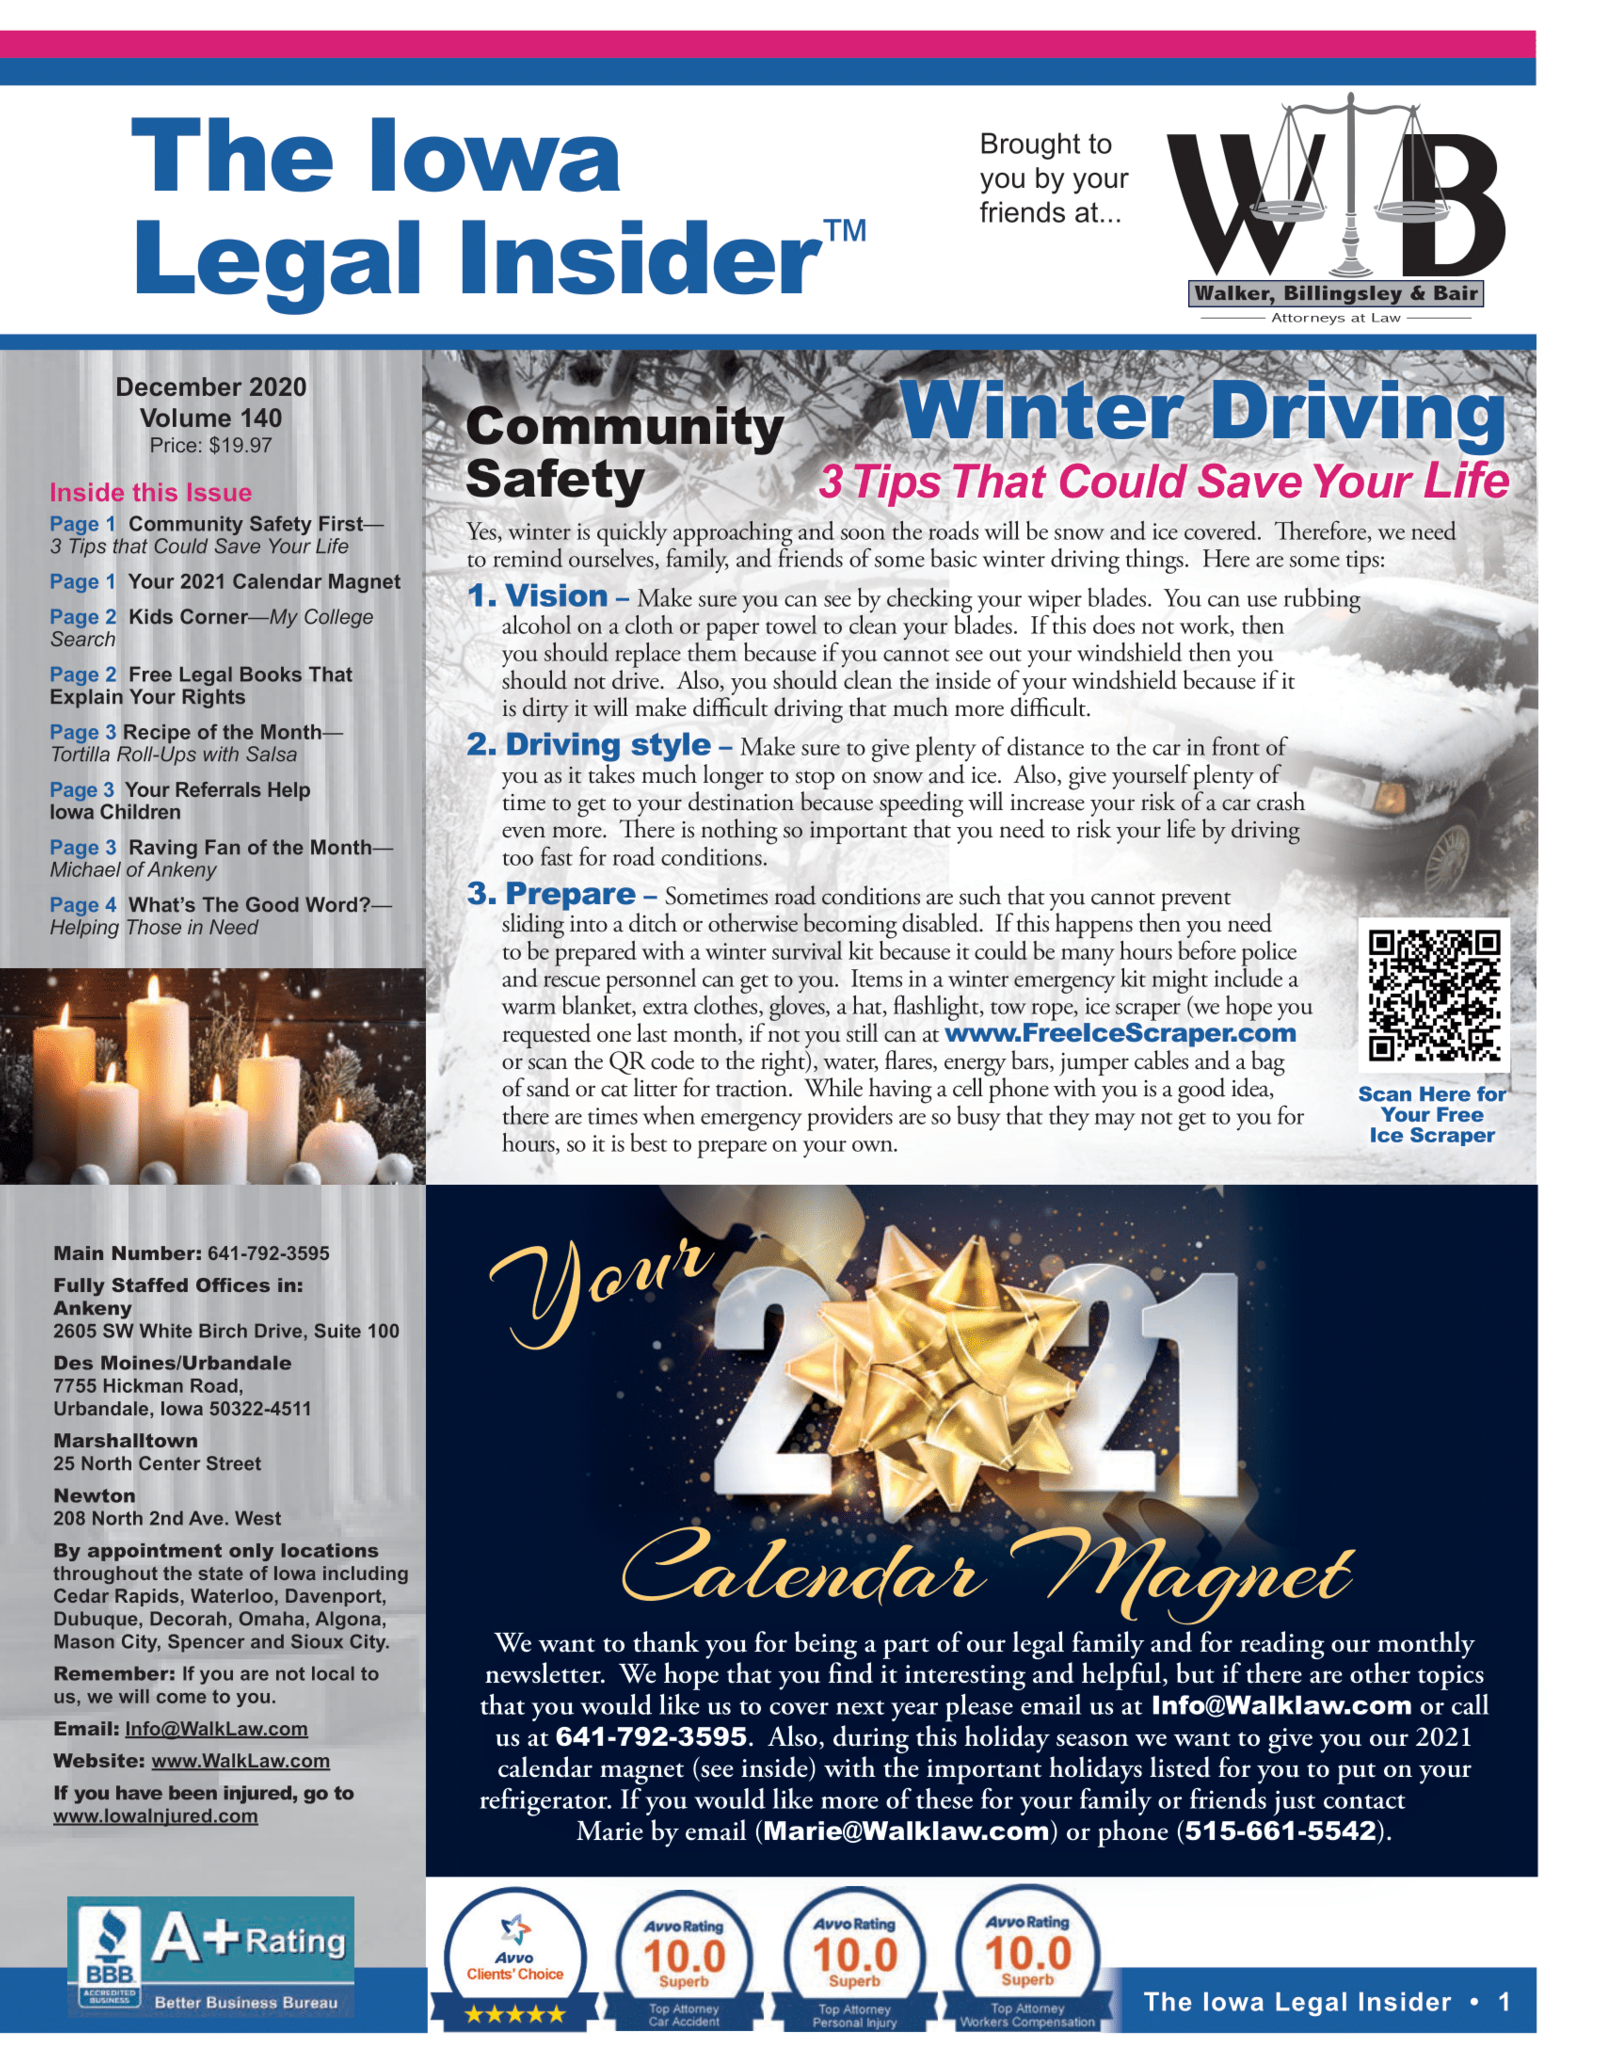 Winter Driving Tips That Could Save Your Life Iowa Legal Insider